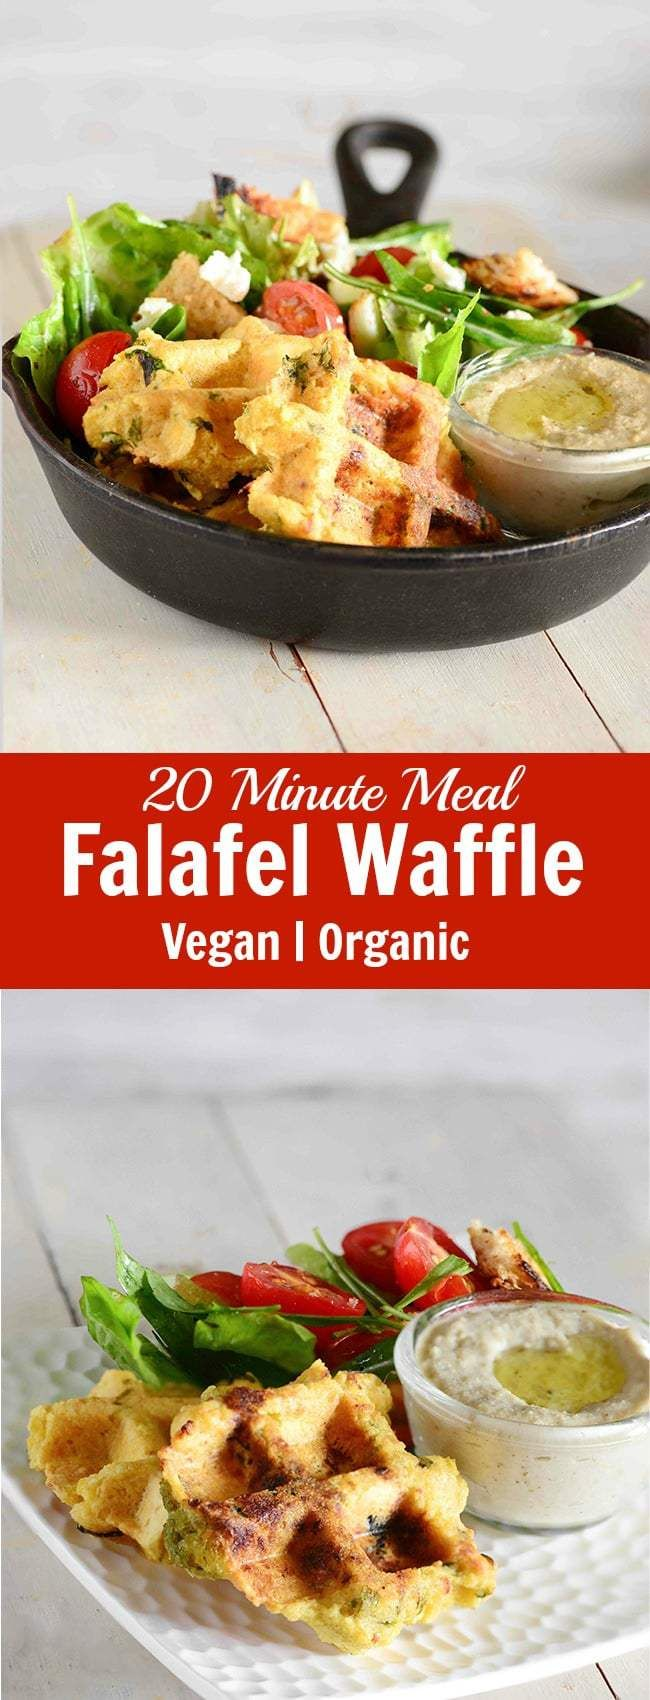 Falafel and waffle, two of my favorite words in the same breath in this falafel waffle recipe, and that makes it one of my absolute favorite way to eat falafels. And this falafel waffle recipe is an adaptation taking inspiration from this popular middle eastern food falafels. Falafel are a popular Middle Eastern/Mediterranean street food. It is often served with hummus and Tahini sauce. The taste of the falafel remains one of my favorite even till today. The other day when I was experime...